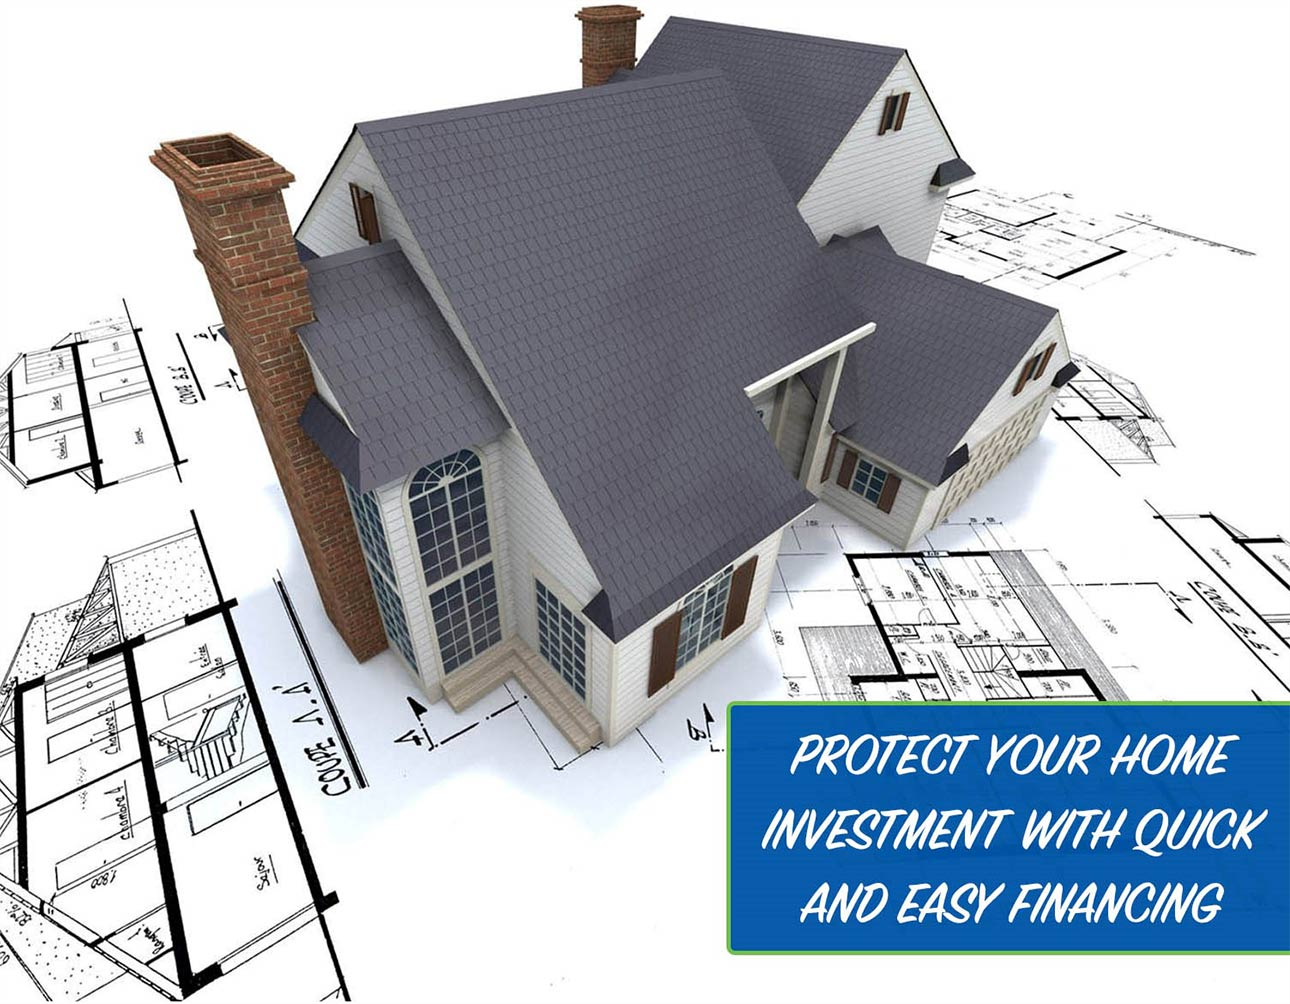 Protect your home with quick and easy financing!